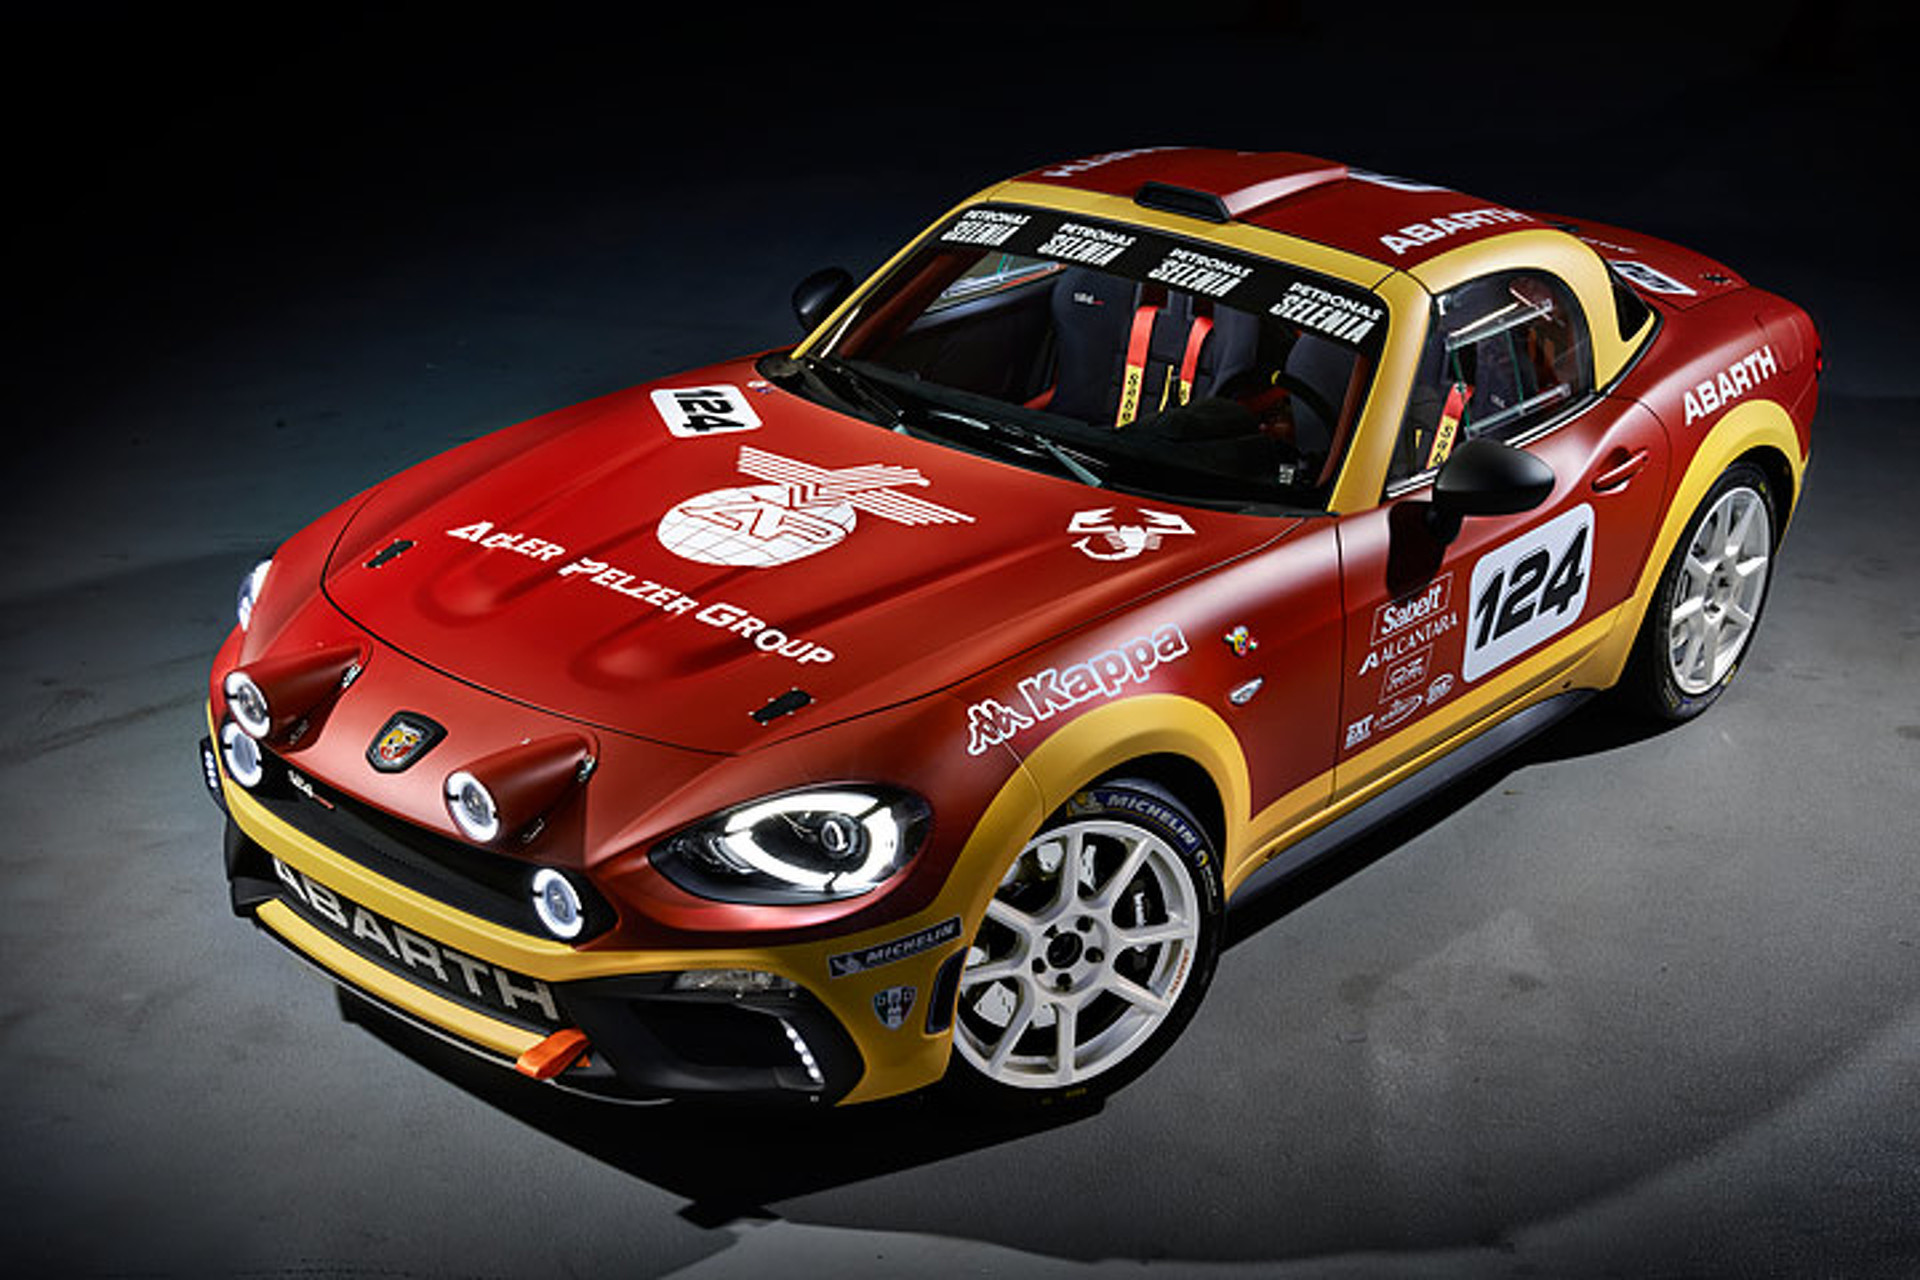 The 2017 Abarth 124 Rally Is A 300 Hp Dirt Slinging Beauty